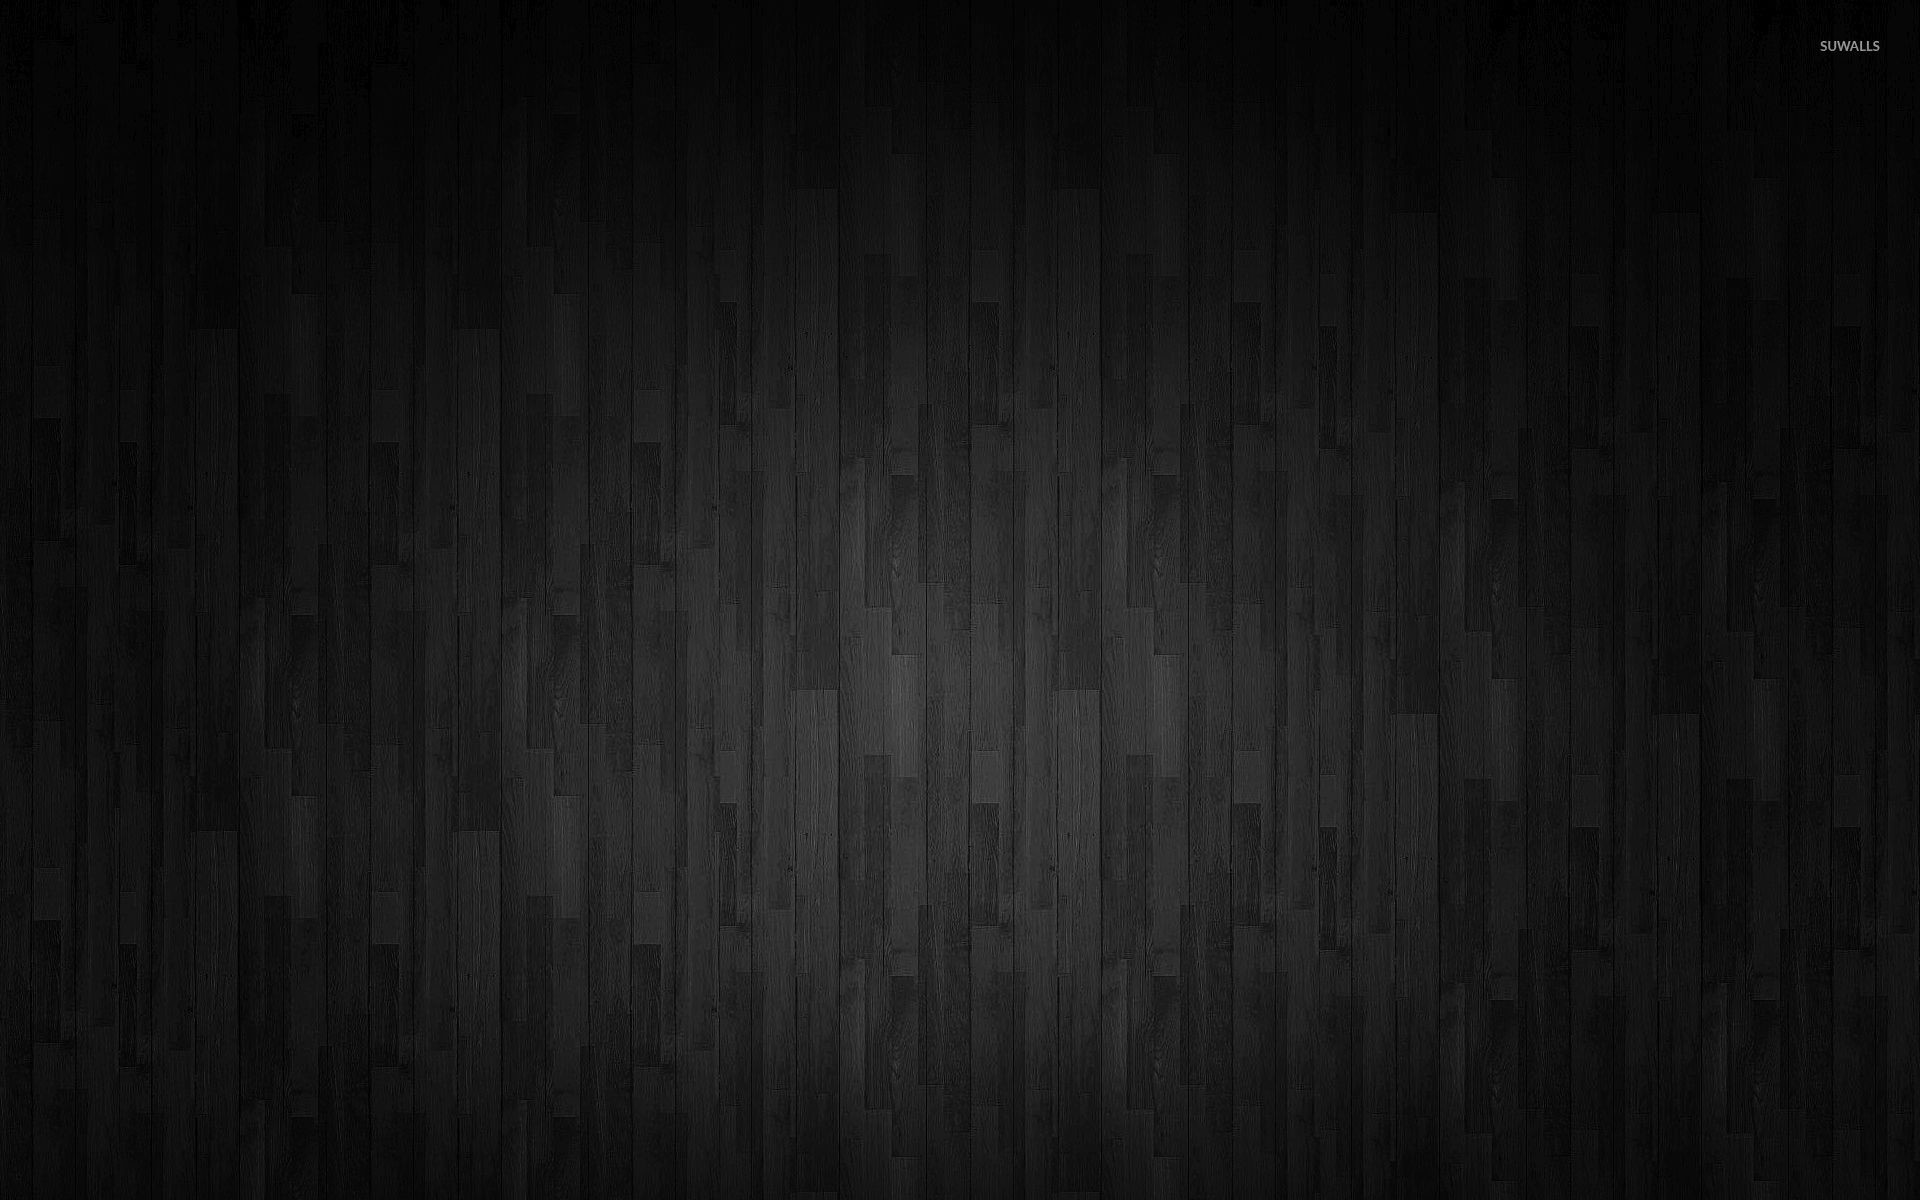 Horizontal dark gray wooden panels wallpaper